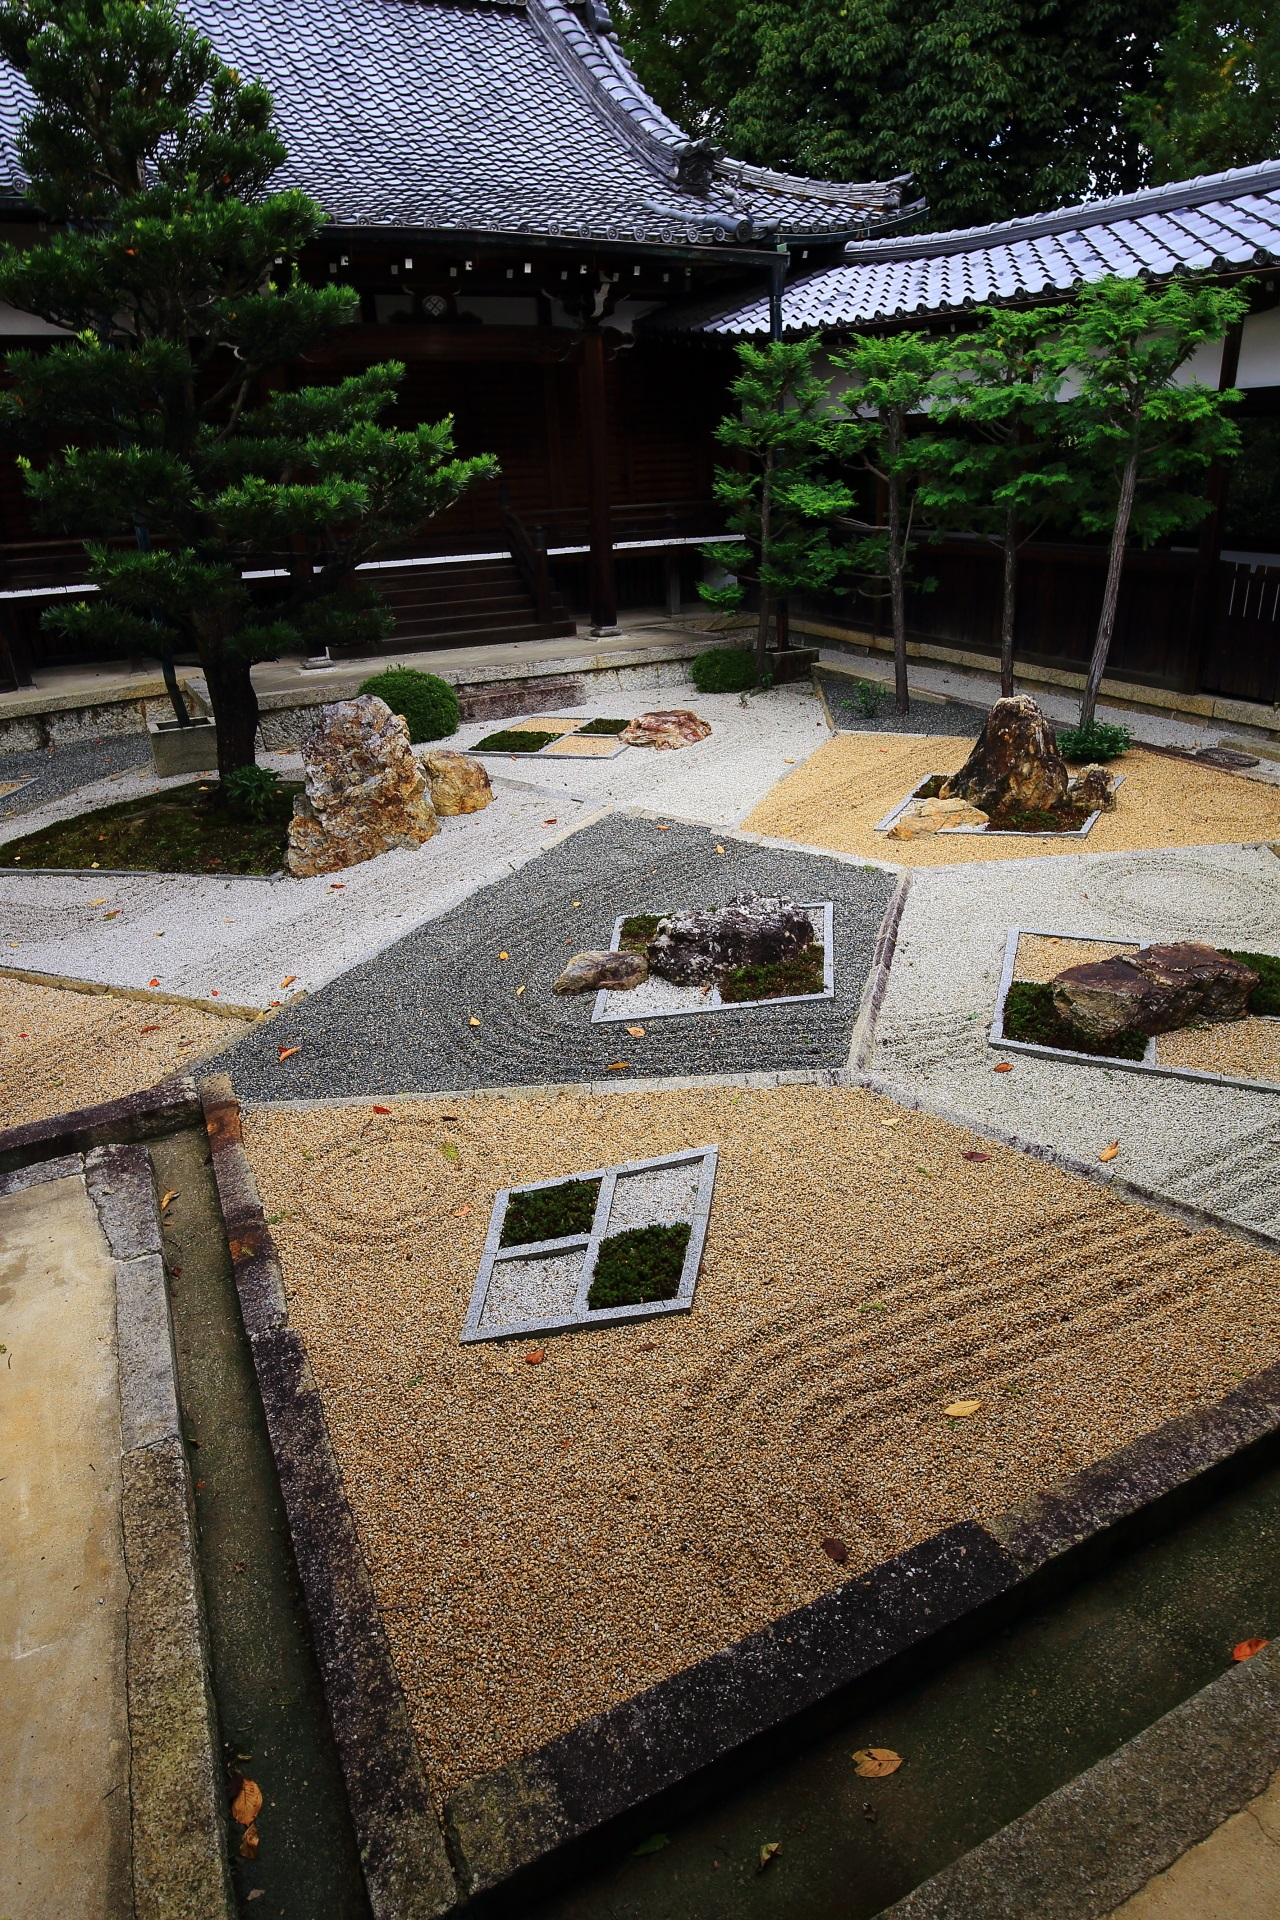 Innovative garden of Shinnyo-do Temple in Kyoto